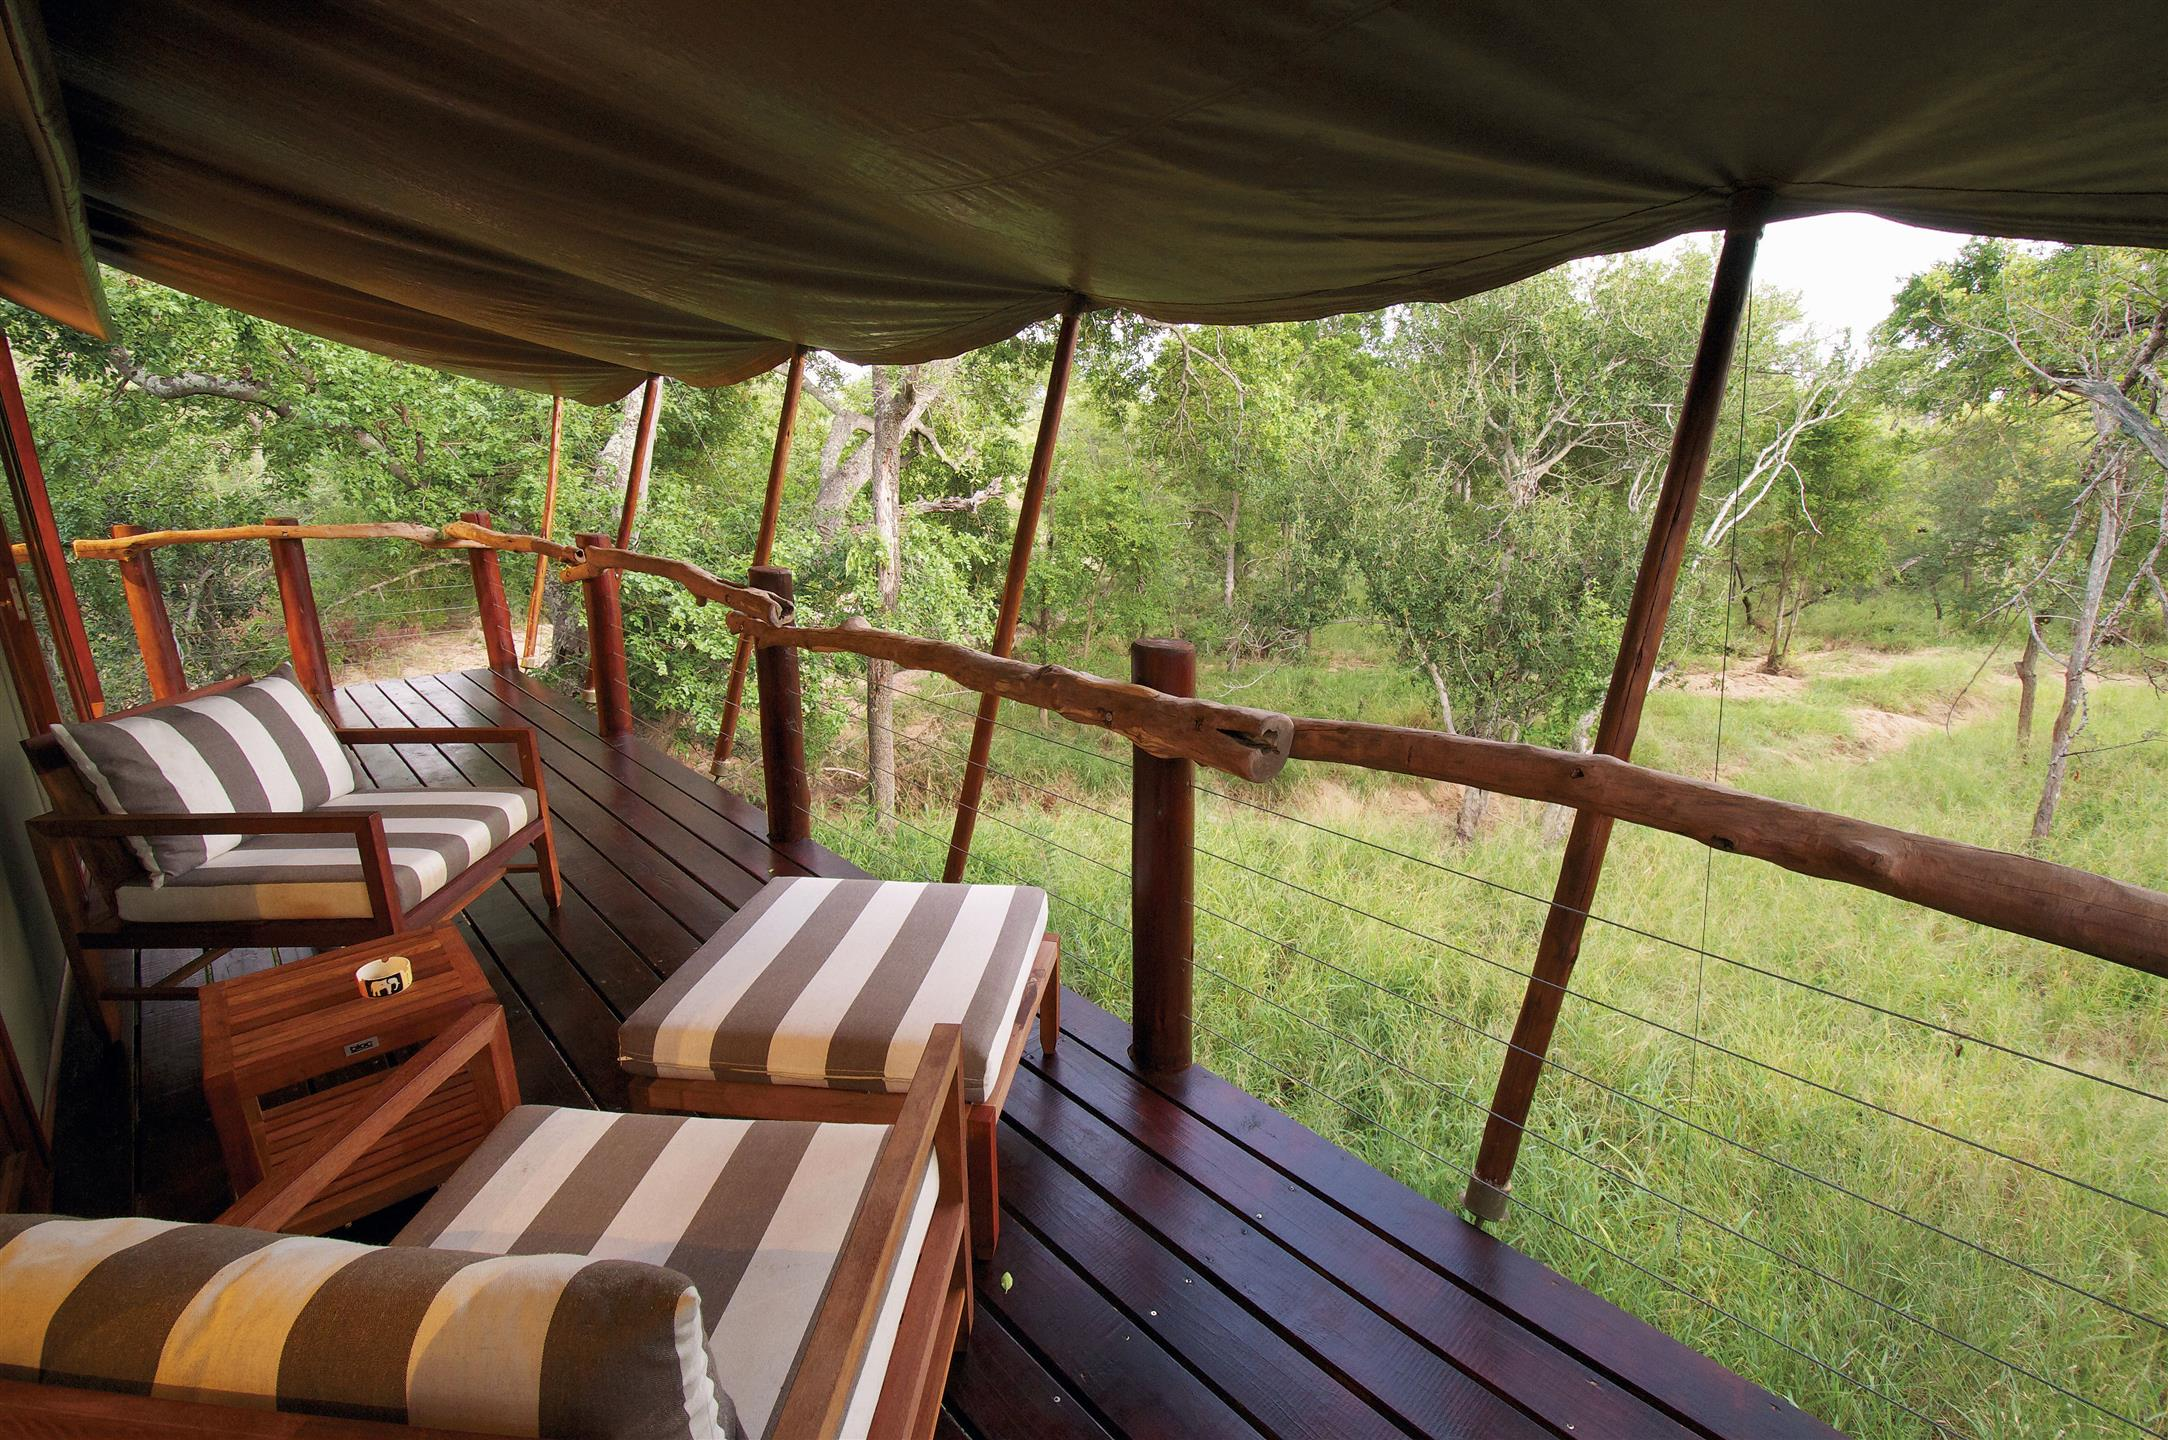 Verandah at Kapama Buffalo Camp